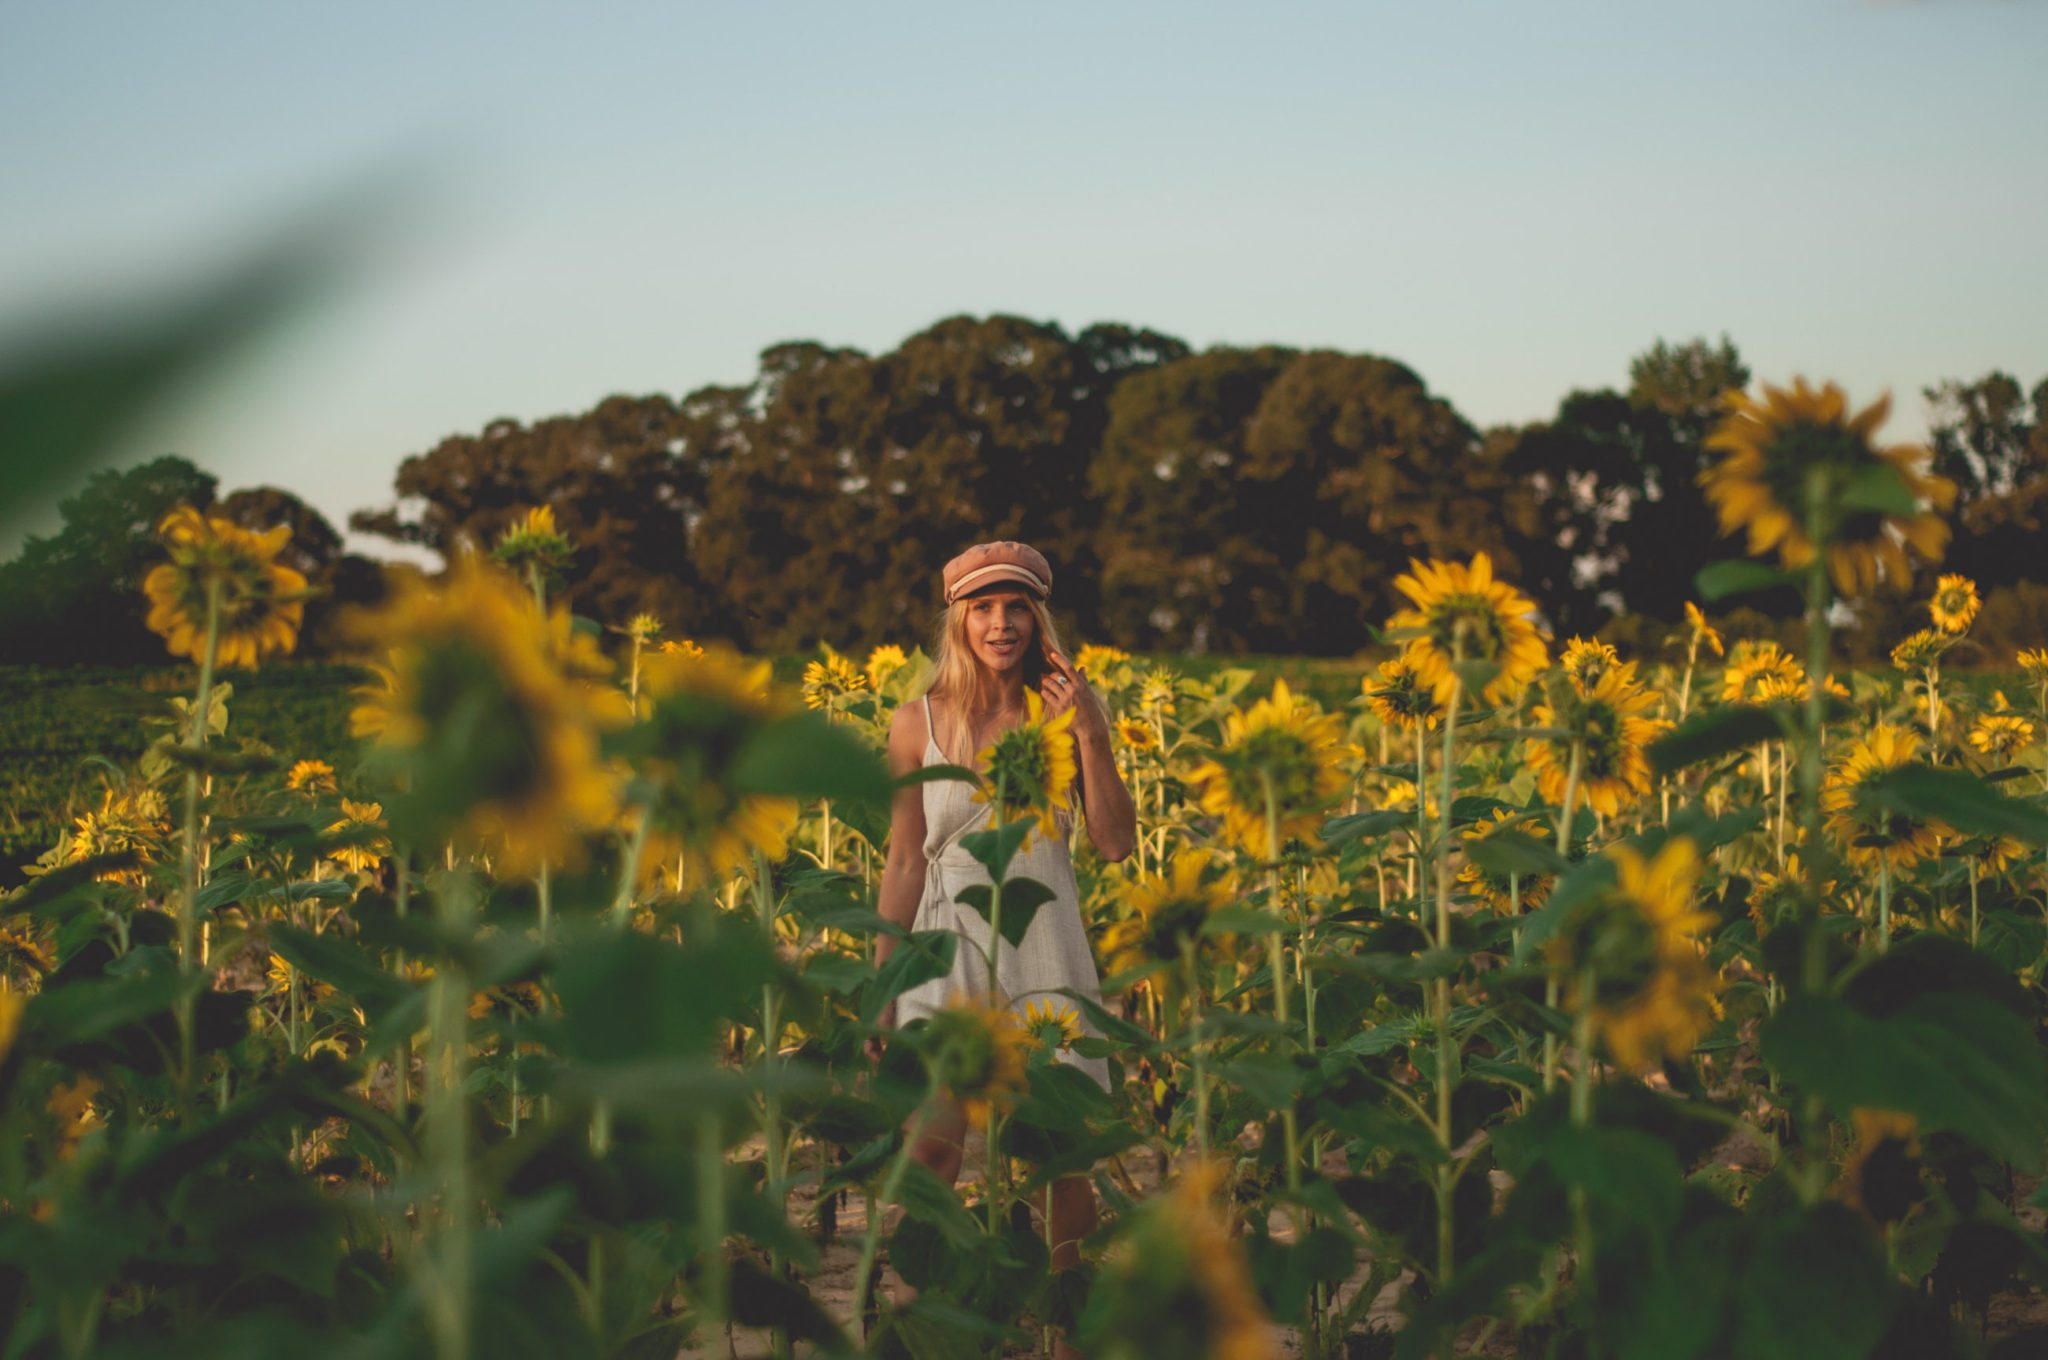 Megan Rae admist a field of sunflowers